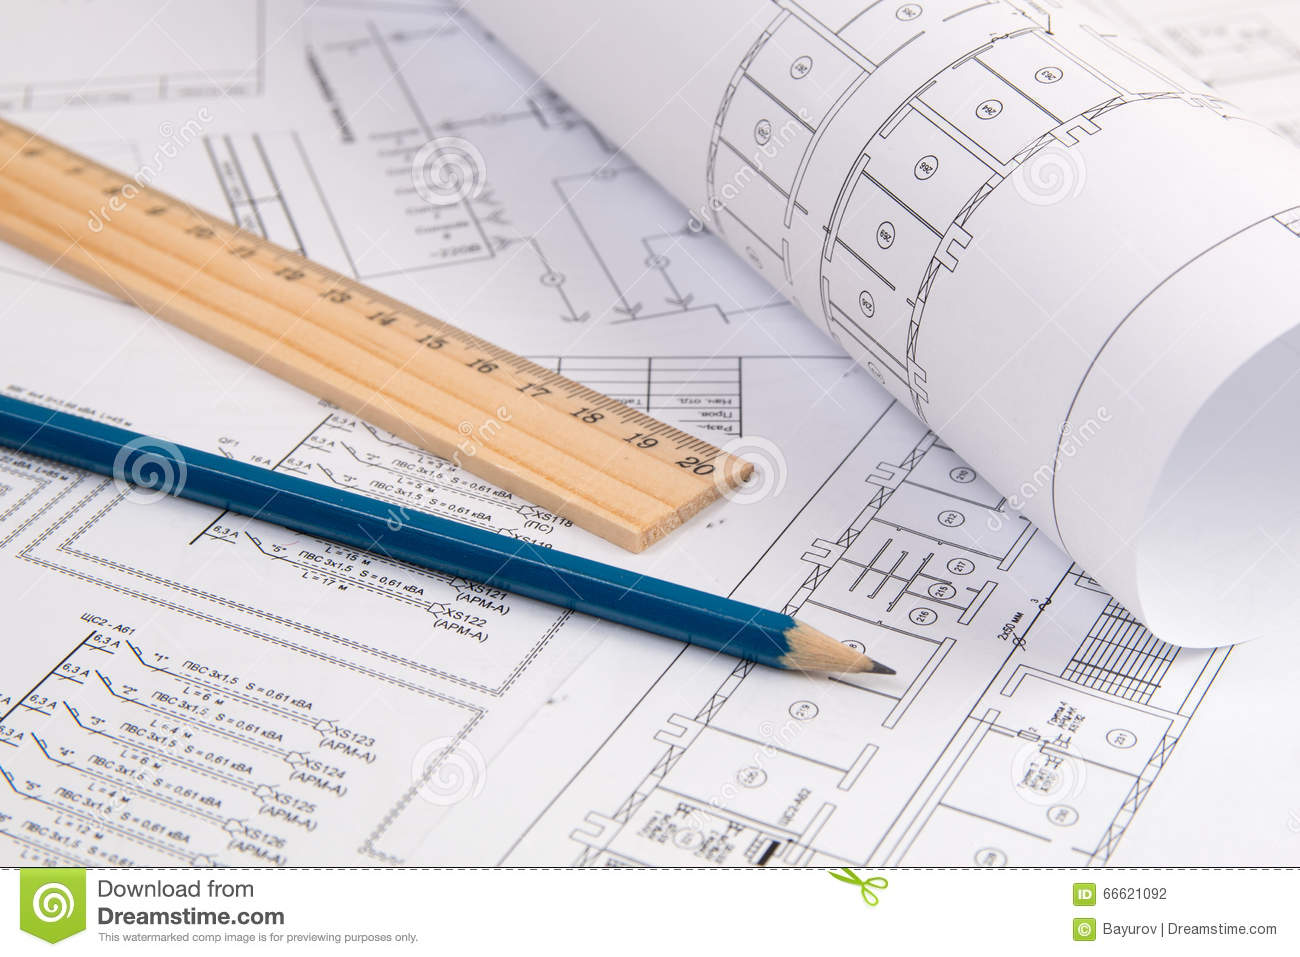 hight resolution of electrical engineering drawings printing pencil and ruler